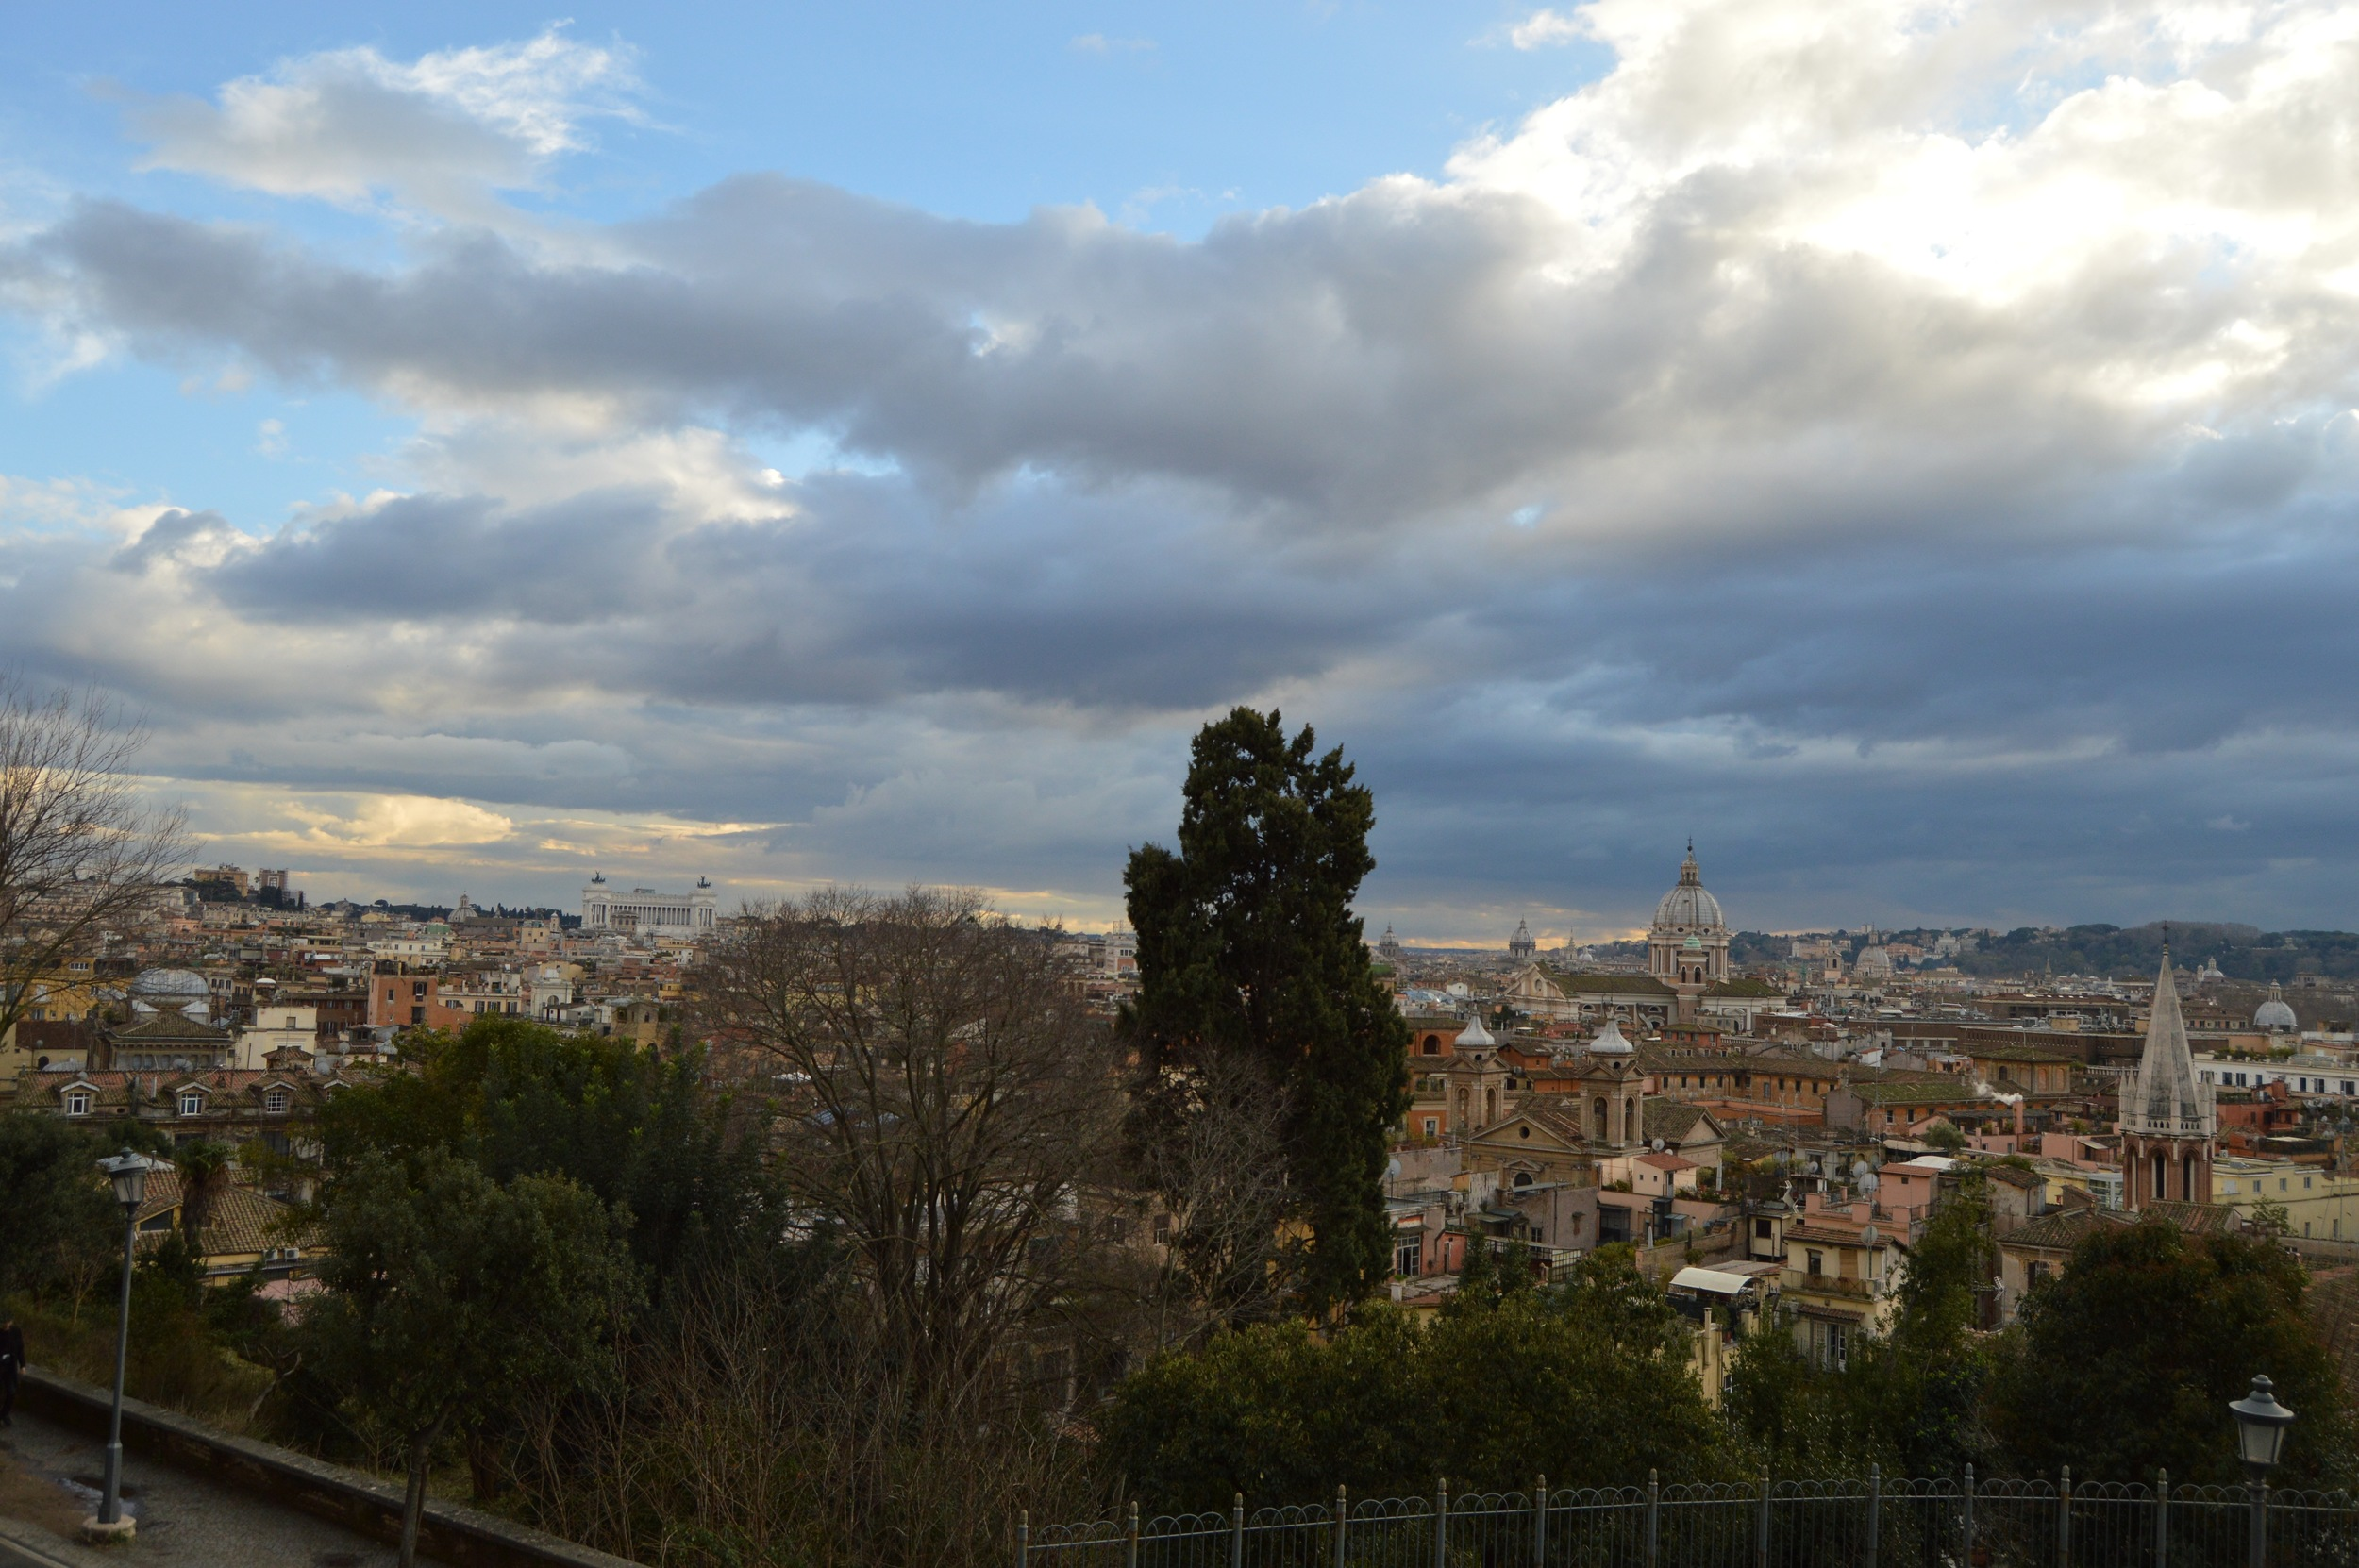 Wide view from Villa Borghese, up past the top of the Spanish steps. The best (and my favorite) view of Rome that I got all weekend. Photo by Max Siskind.